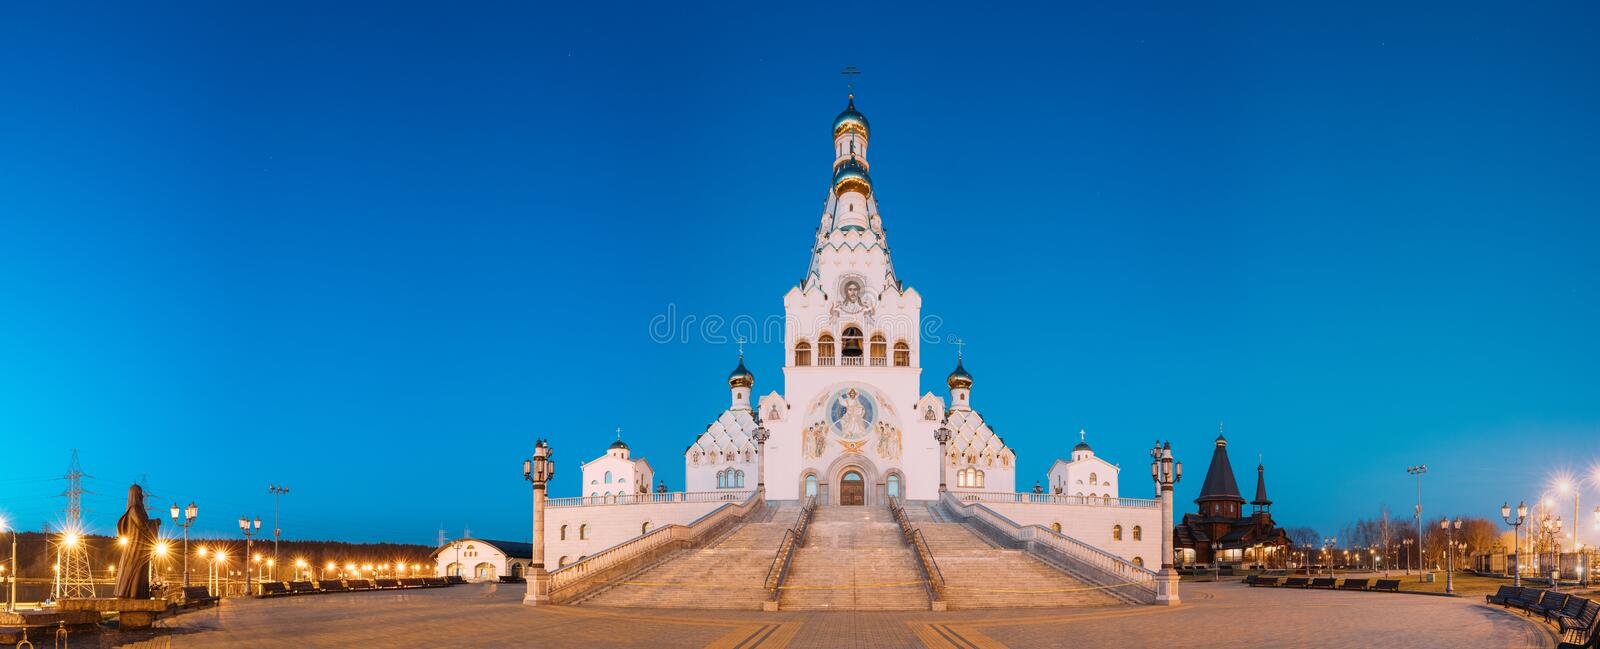 Minsk, Belarus. Night View Of All Saints Church. Minsk Memorial. Minsk, Belarus. Pamoramic Night View Of All Saints Church. Minsk Memorial Church In Memory Of stock images